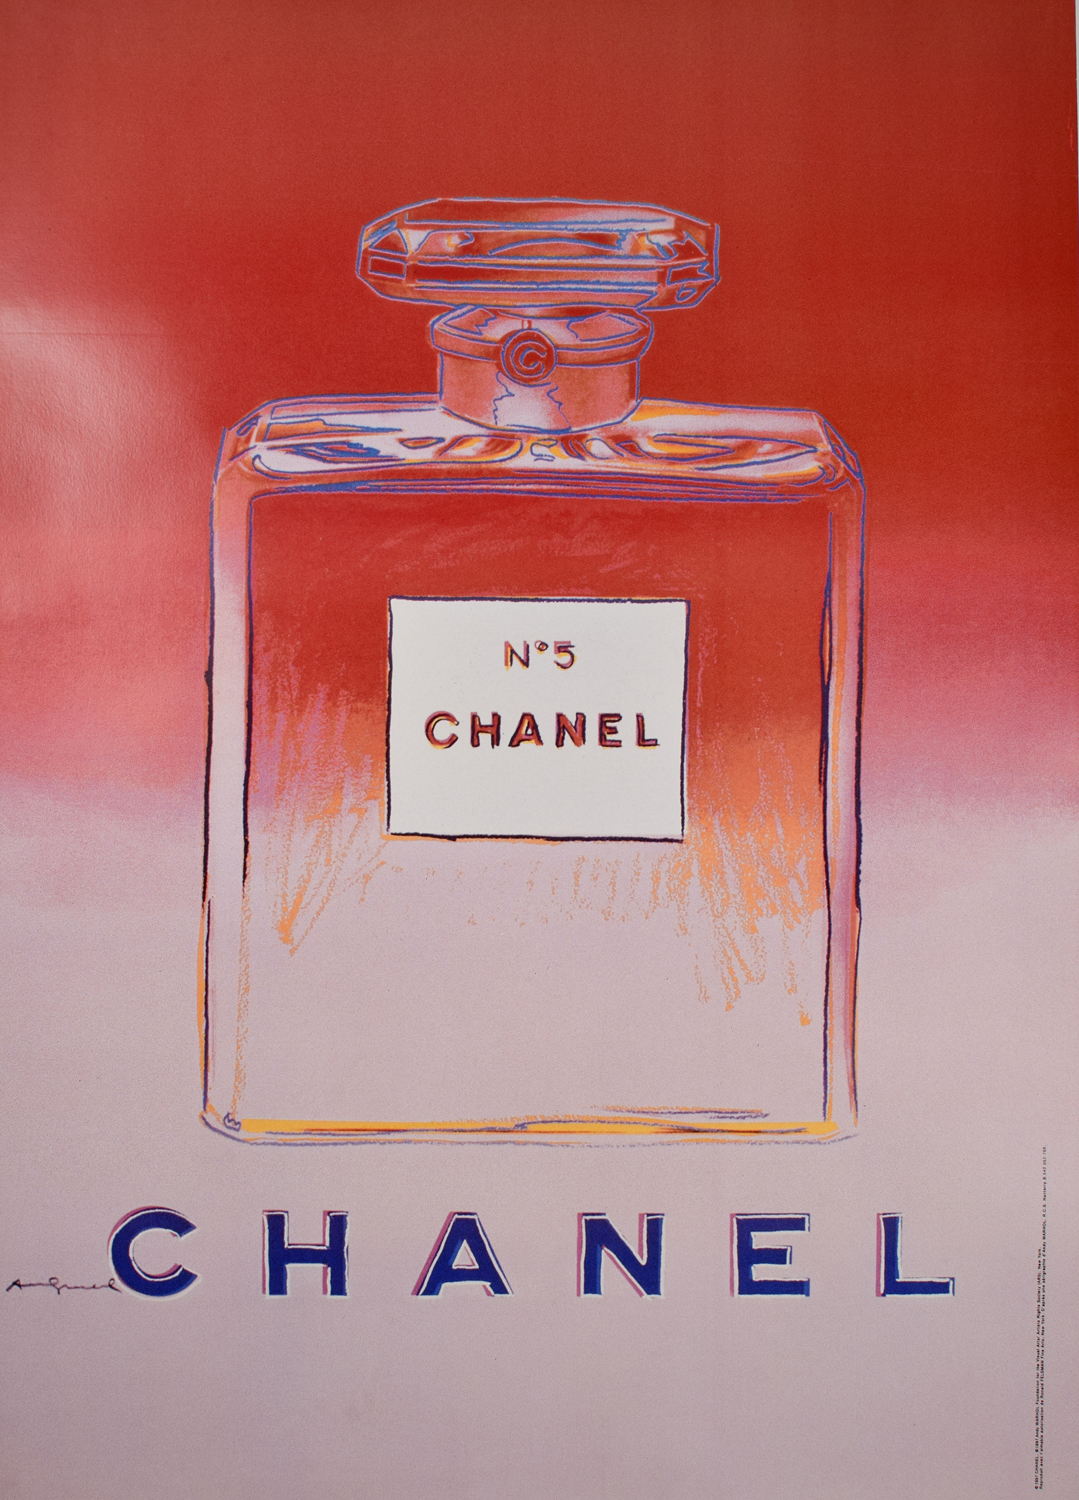 Chanel 5 Pink Designed By Andy Warhol Modernism